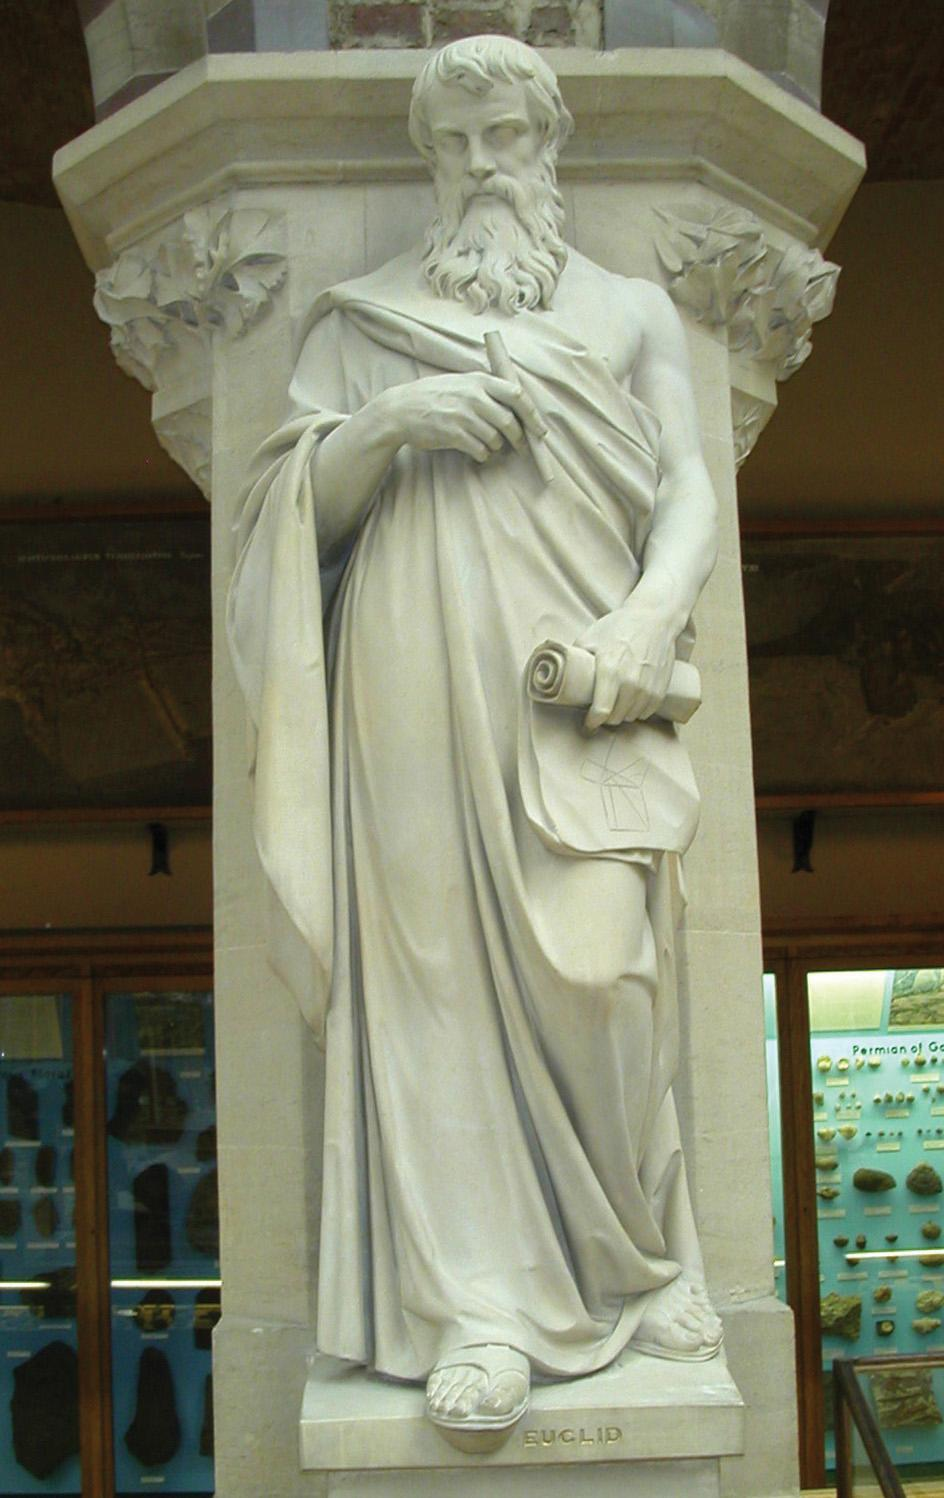 A 19th-century statue of the ancient Greek mathematician Euclid of Alexandria. Photo: Wikipedia